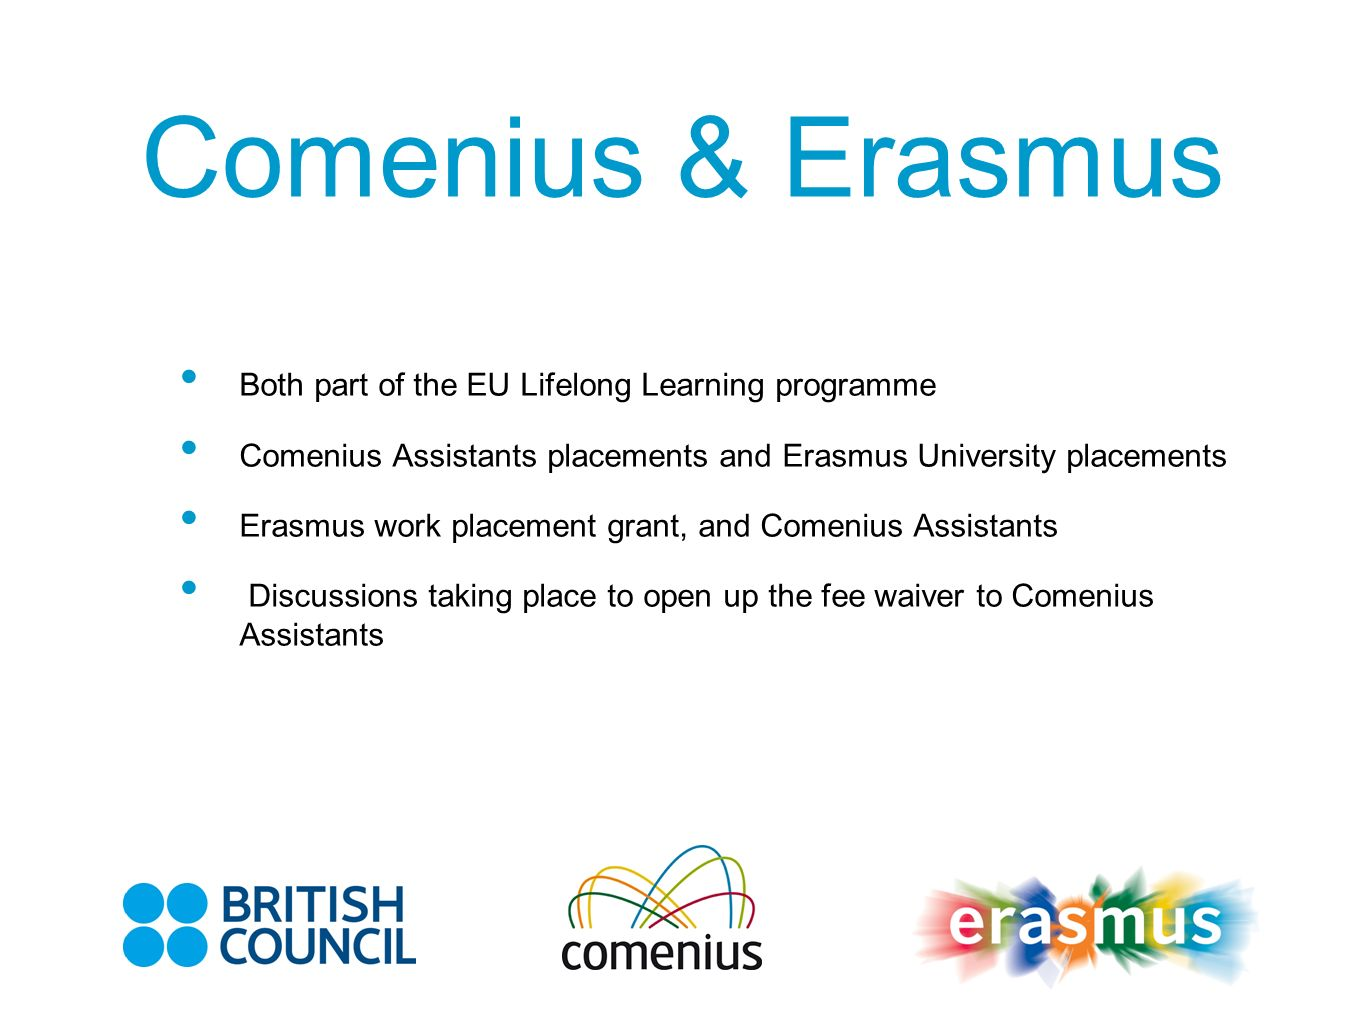 Comenius & Erasmus Both part of the EU Lifelong Learning programme Comenius Assistants placements and Erasmus University placements Erasmus work placement grant, and Comenius Assistants Discussions taking place to open up the fee waiver to Comenius Assistants